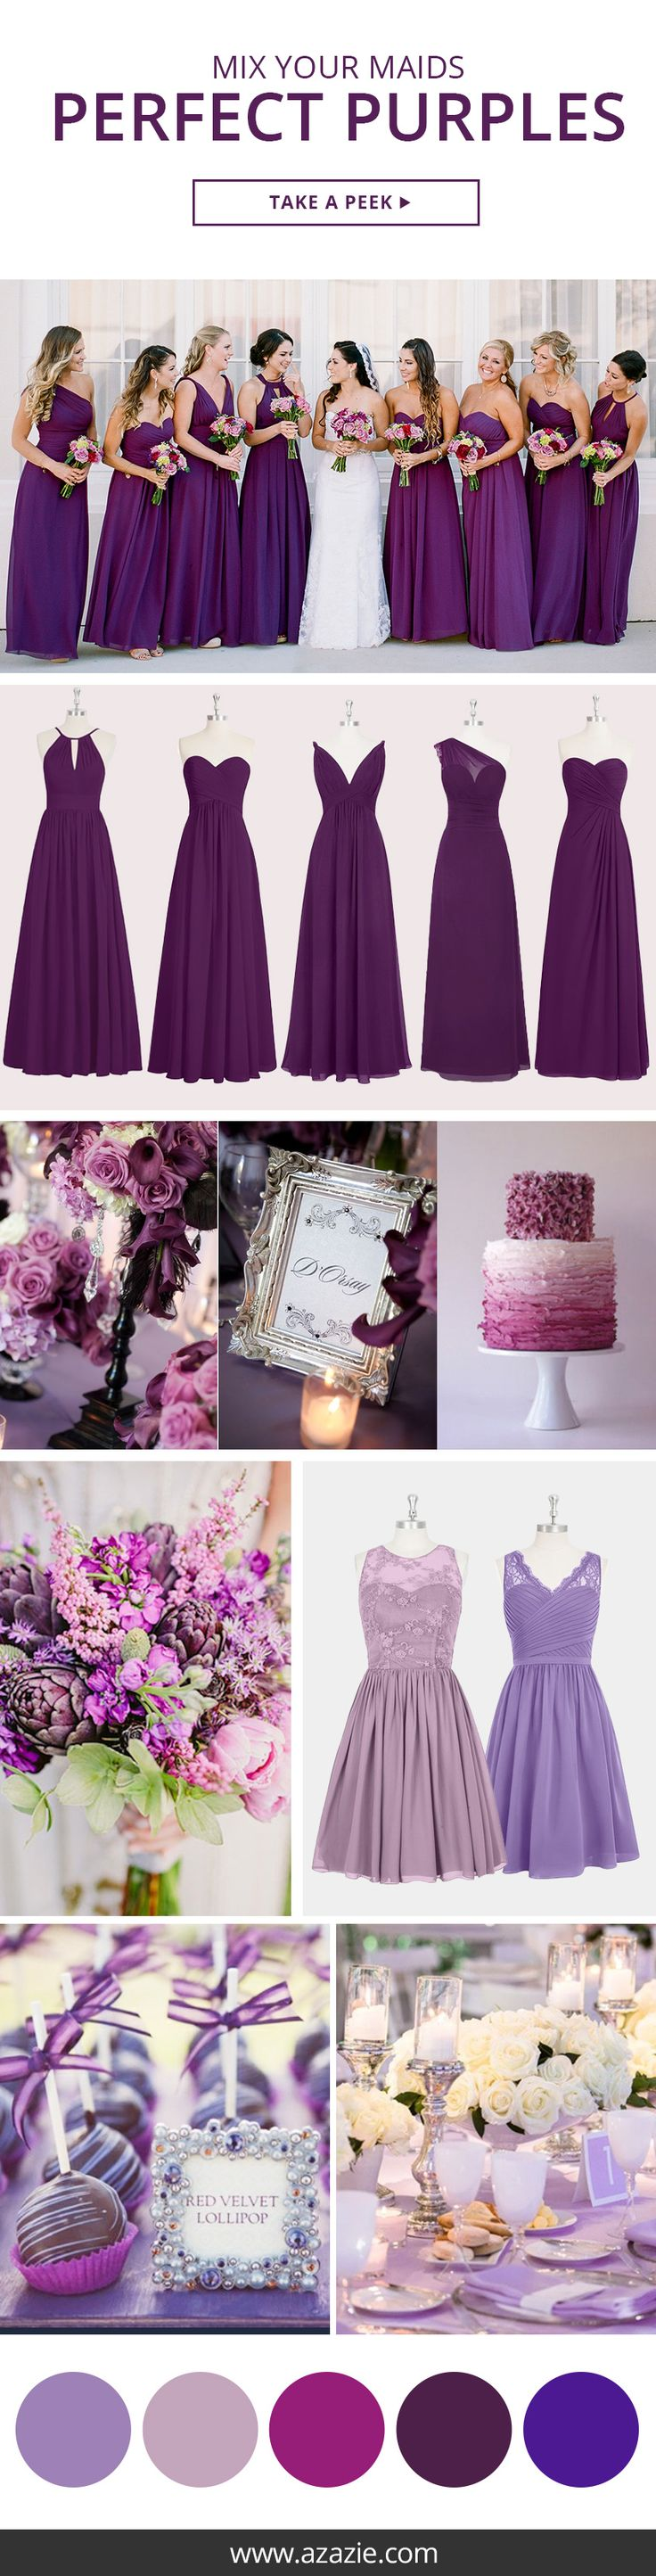 Azazie is the online destination for special occasion dresses. Our online boutique connects bridesmaids and brides with over 400 on-trend styles, where each is available in 50+ colors. bridesmaids http://gelinshop.com/ppost/164029611408163229/